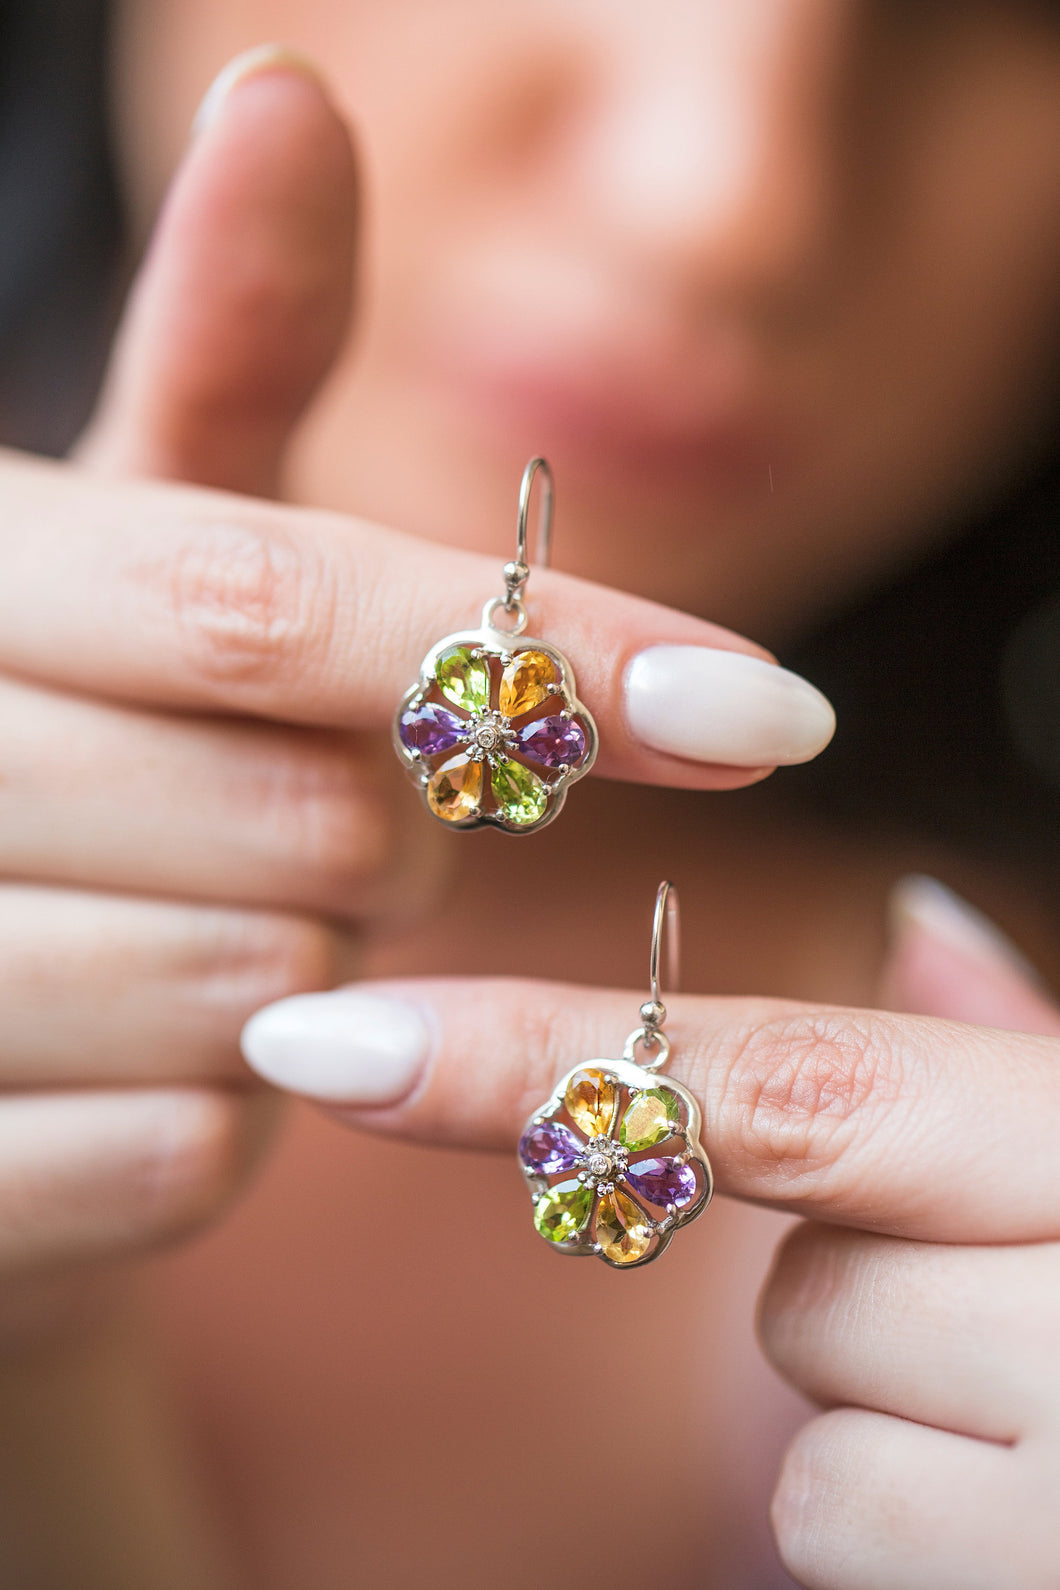 iprecious-creations - Genuine Gemstones Earrings, Amethyst Earrings, Citrine Earrings, Peridot Earrings, Silver Earrings, Drop Earrings - Earrings